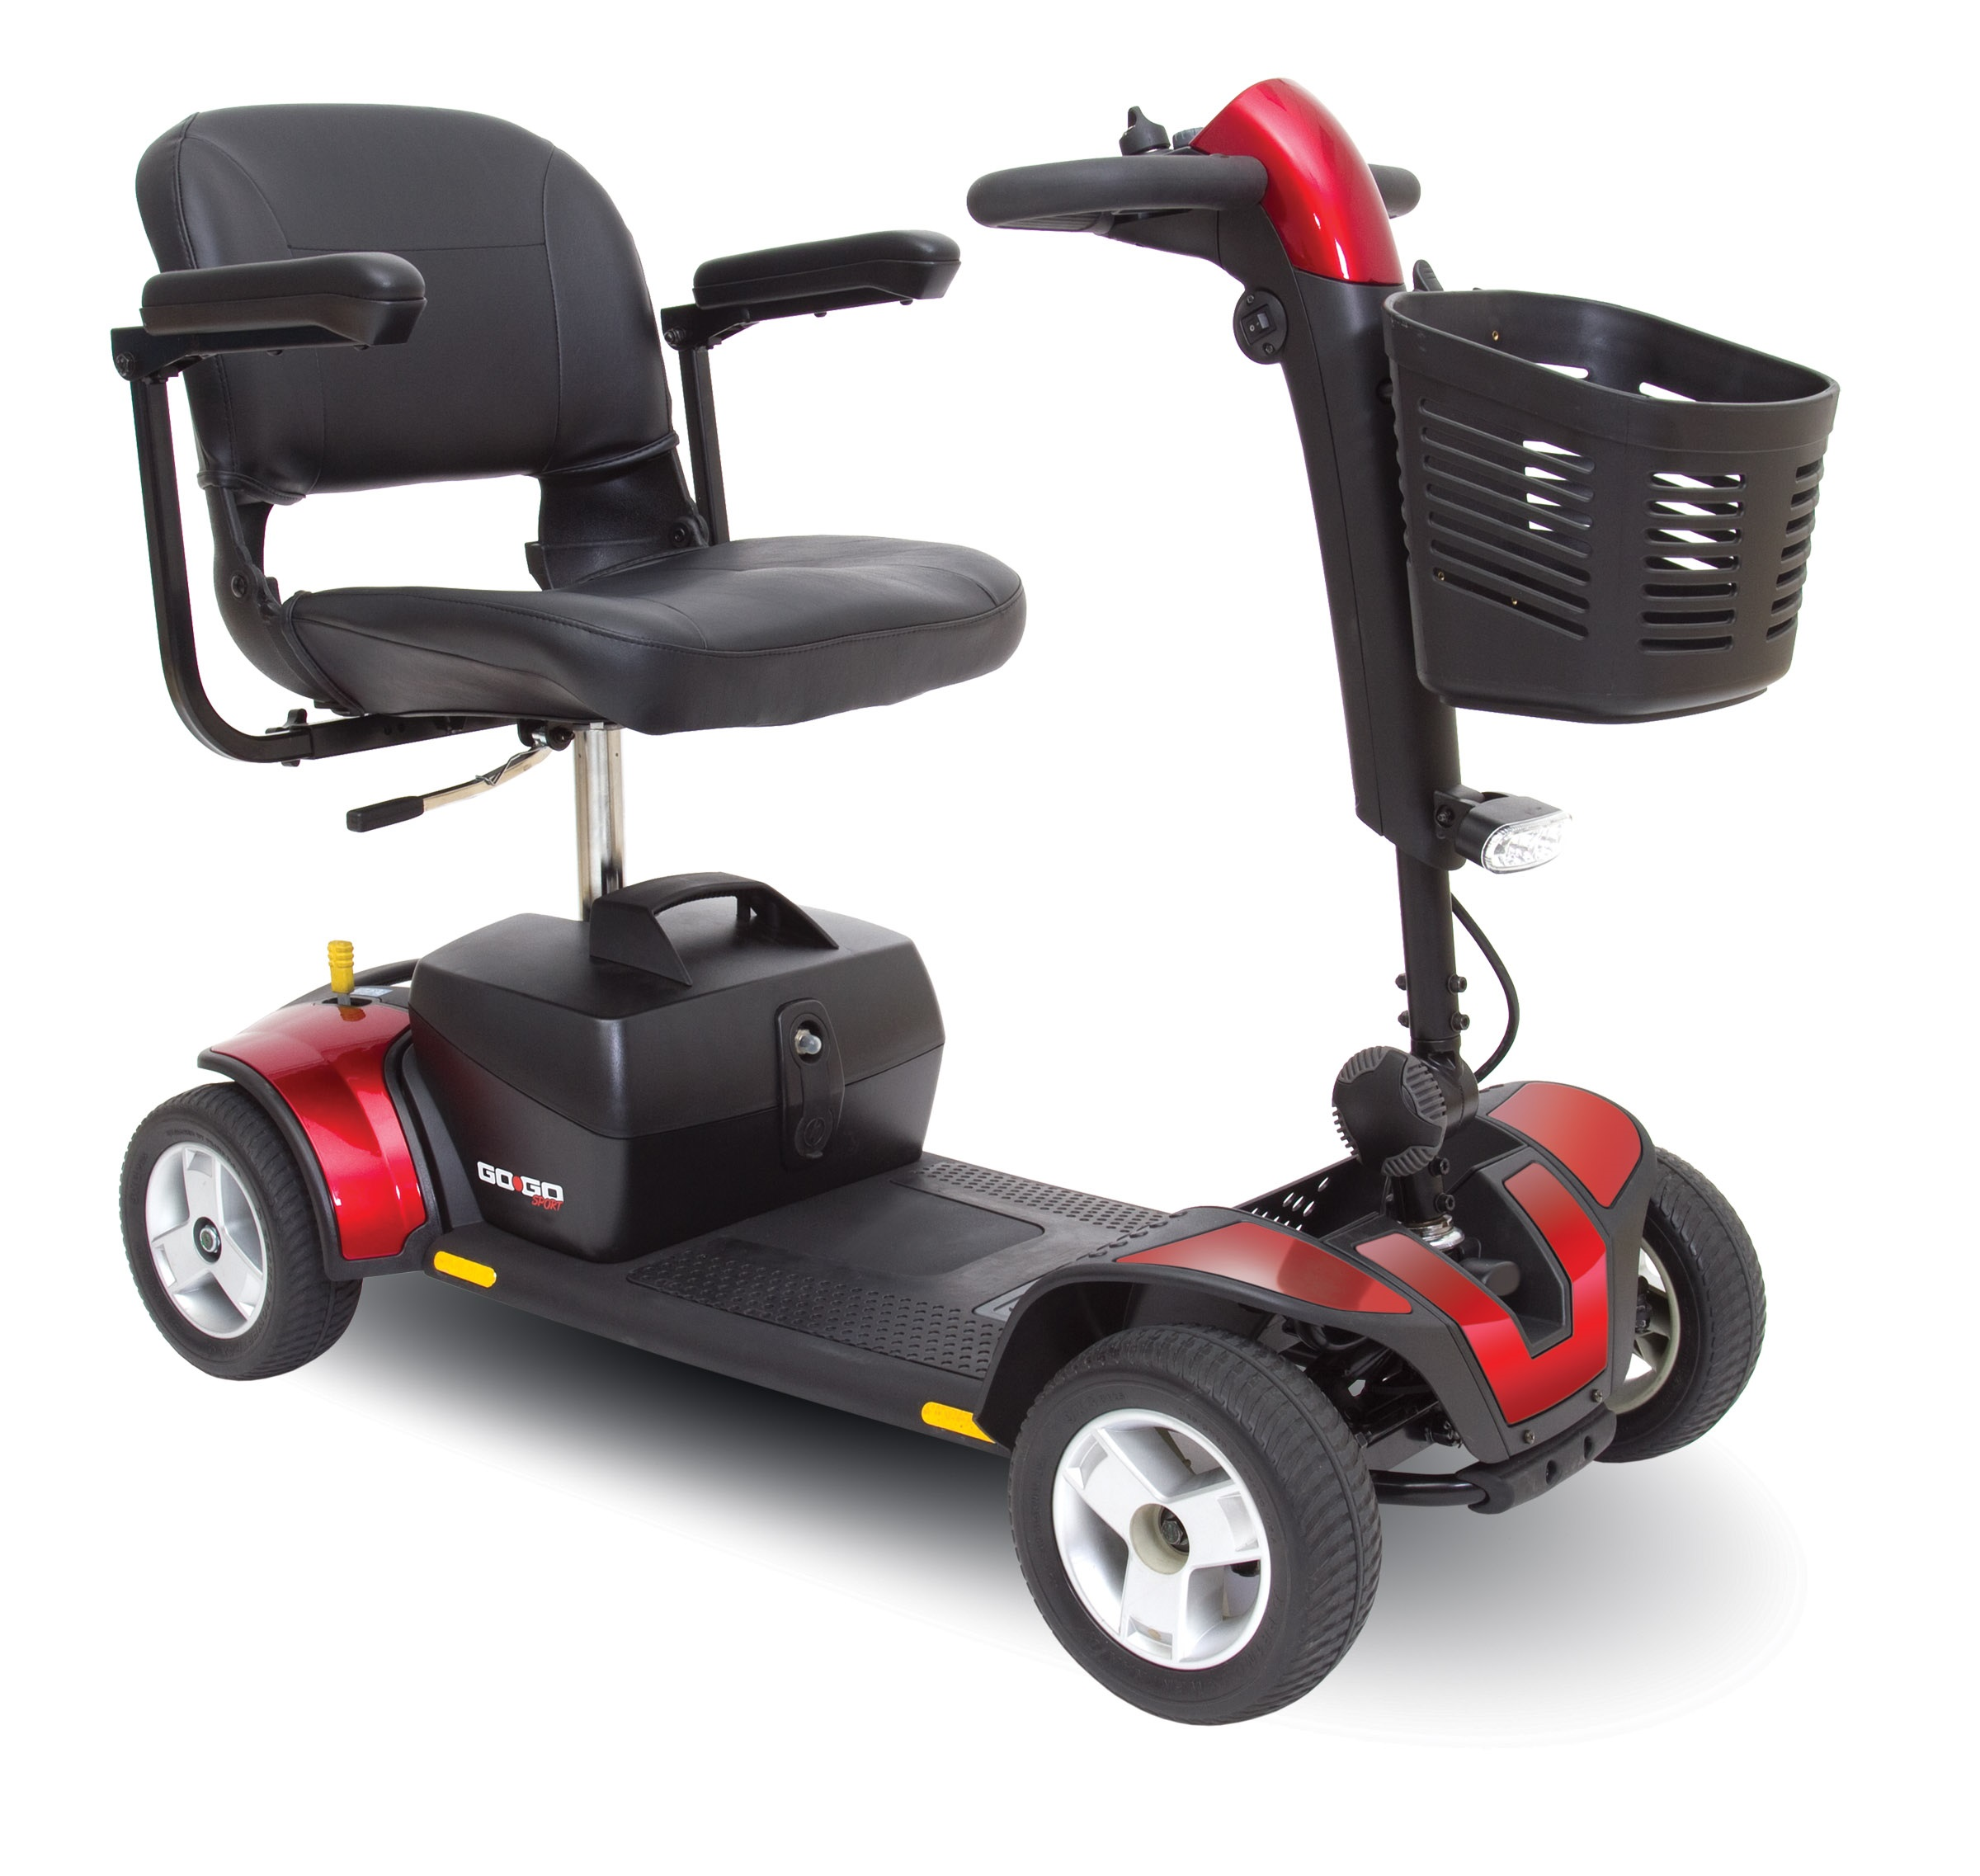 british mobility chairs swivel chair wood scooter rentals sales 1 rental provider pride go sport